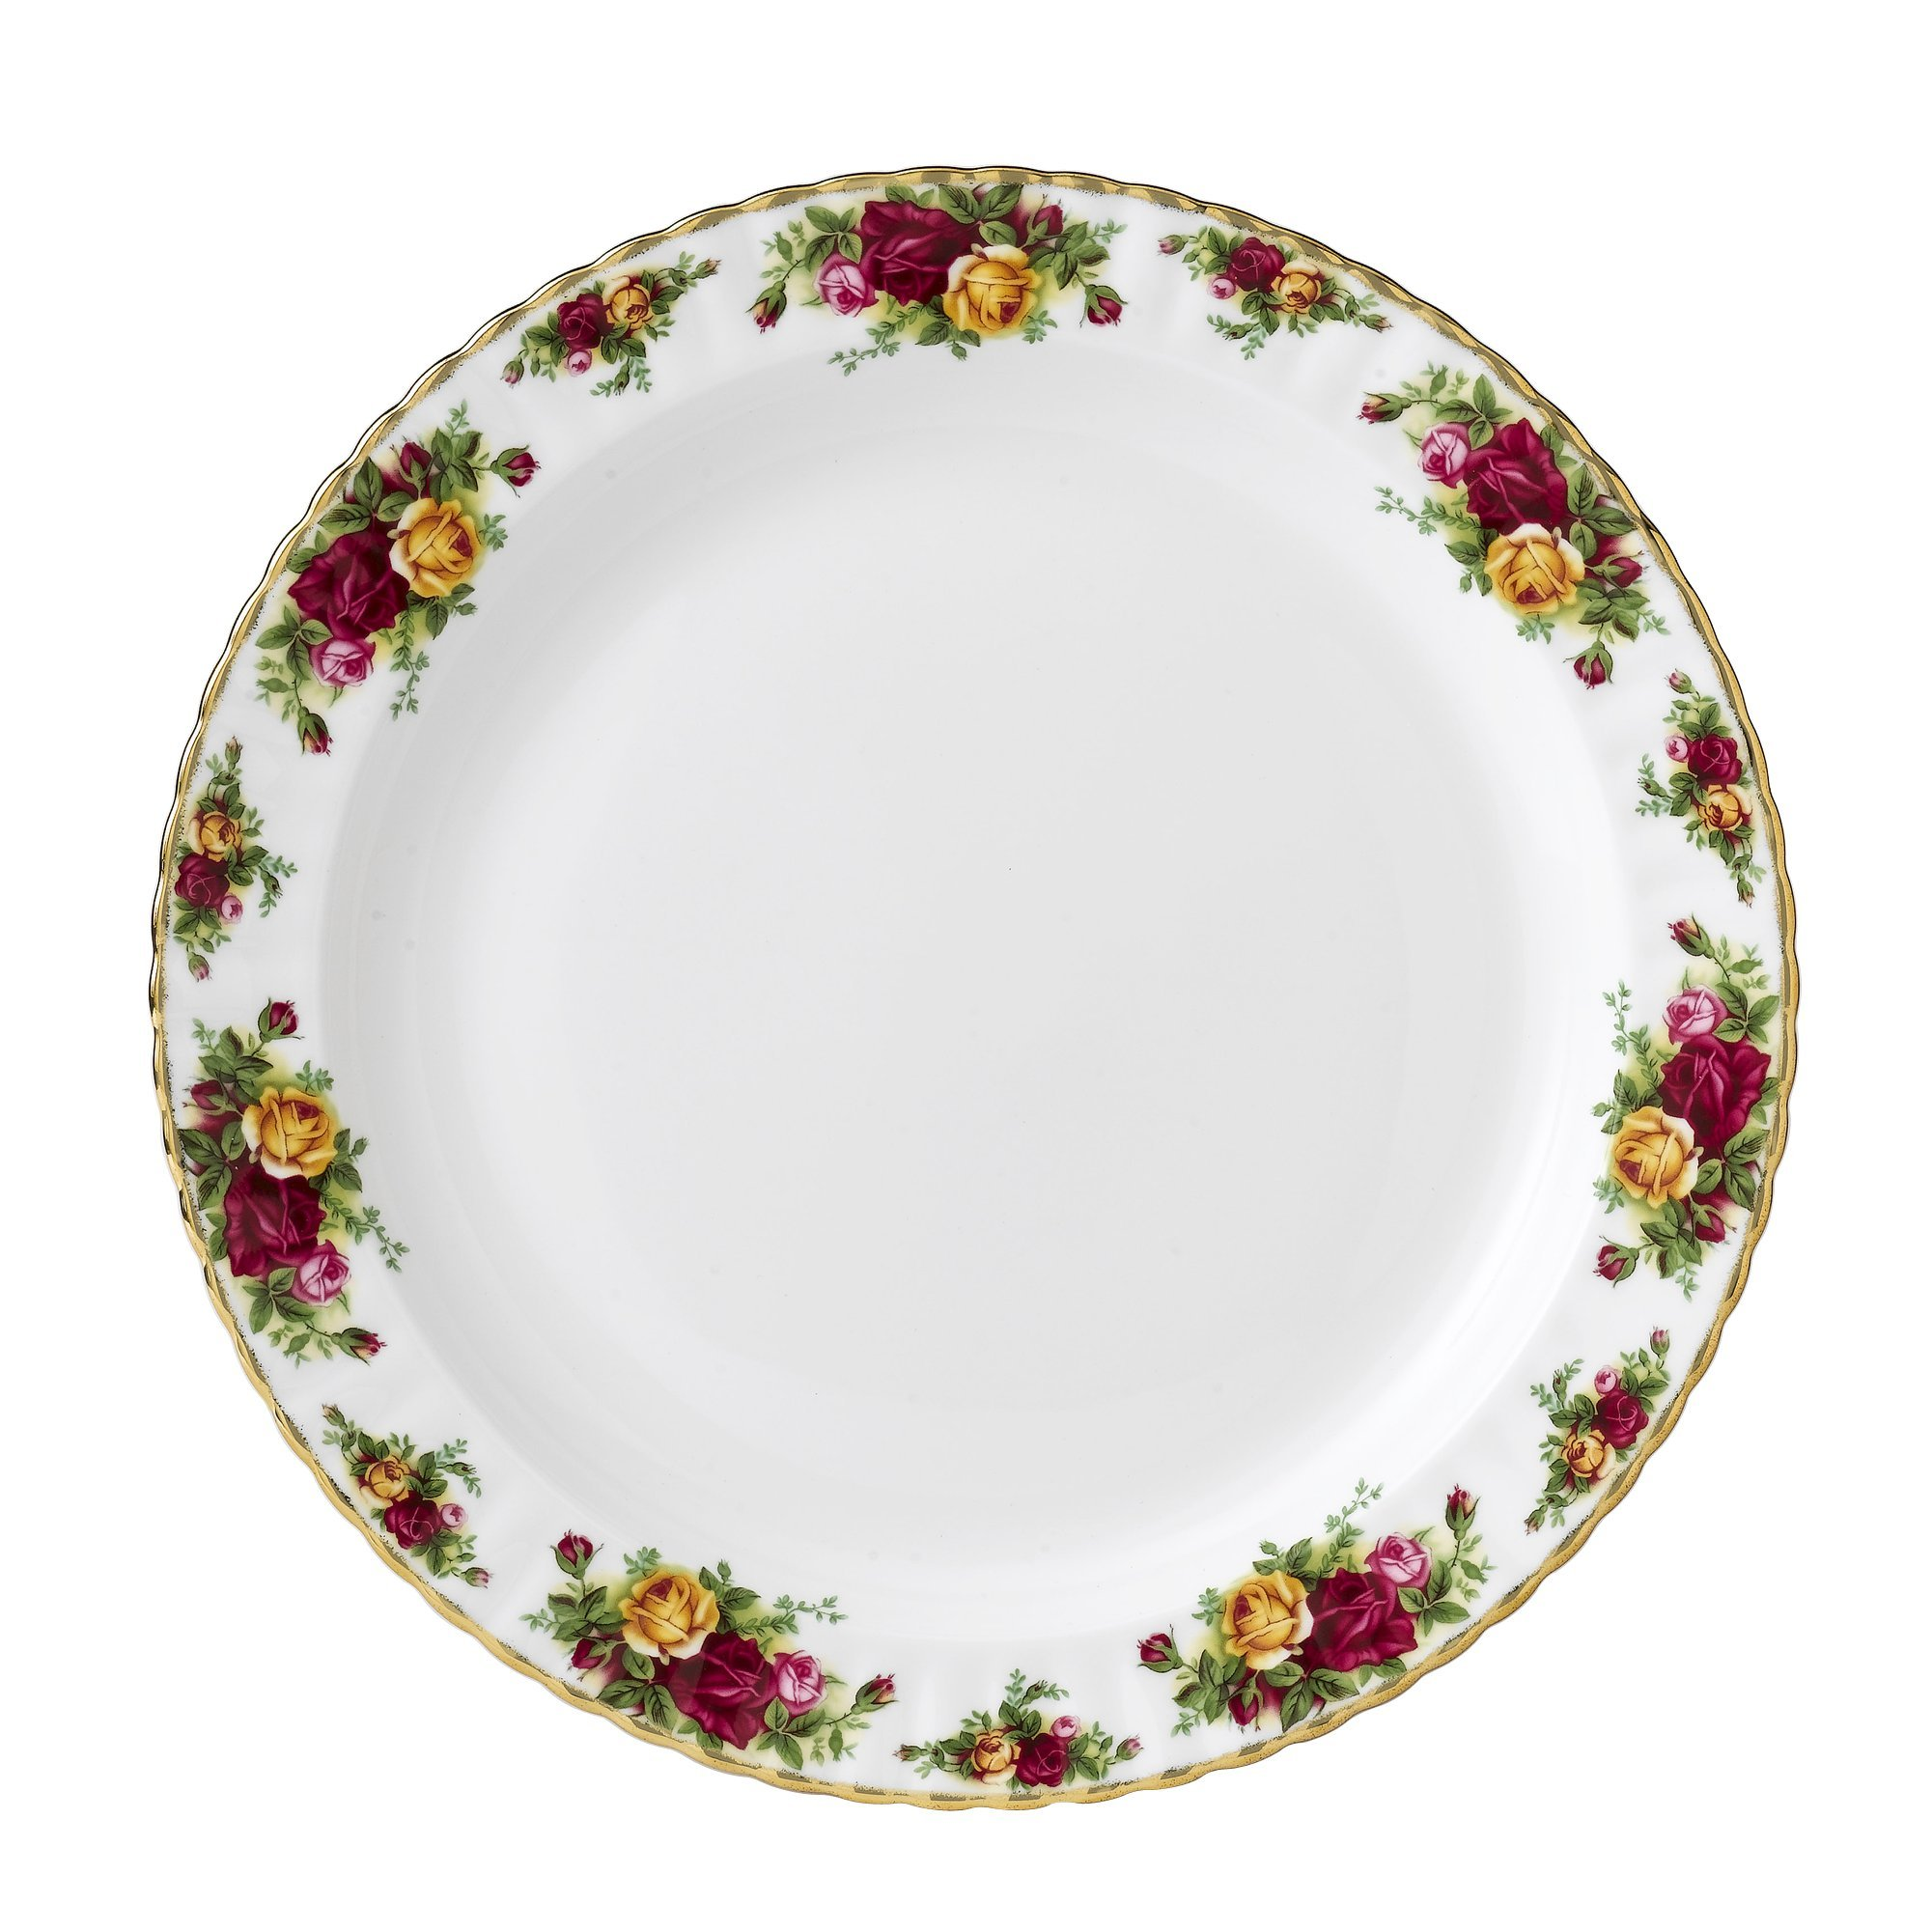 Royal Albert Old Country Roses Charger Plate 34cm